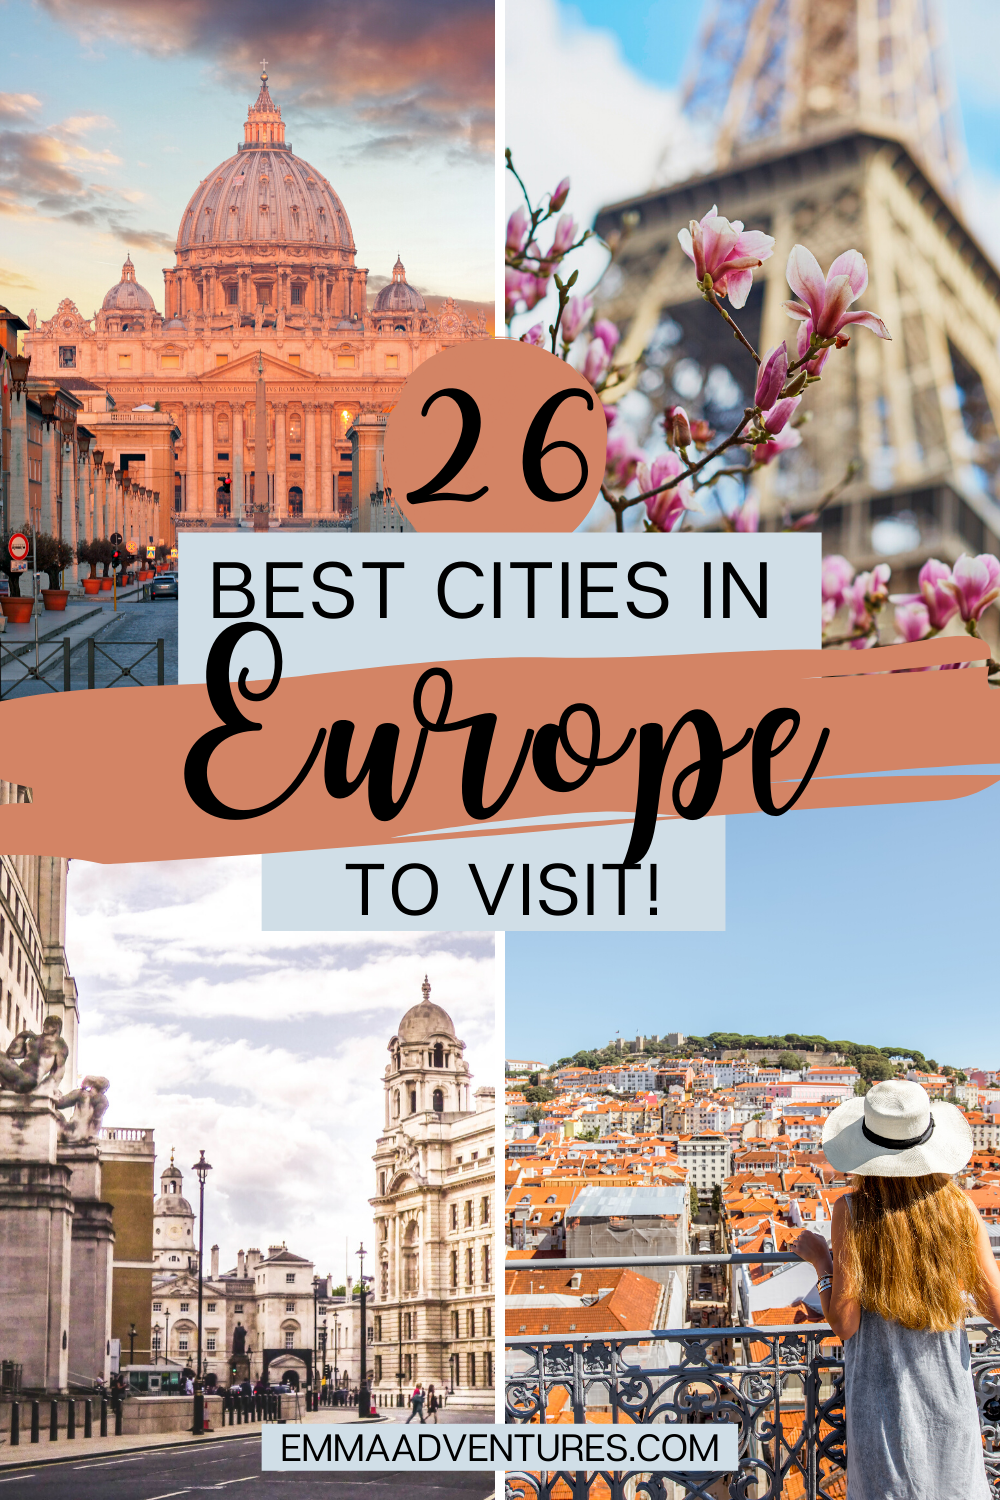 The best cities to visit in Europe that you can't miss! Find out 26 of the most beautiful cities in Europe in this ultimate Europe bucket list! #europe #europetravel #bucketlist #europebucketlist